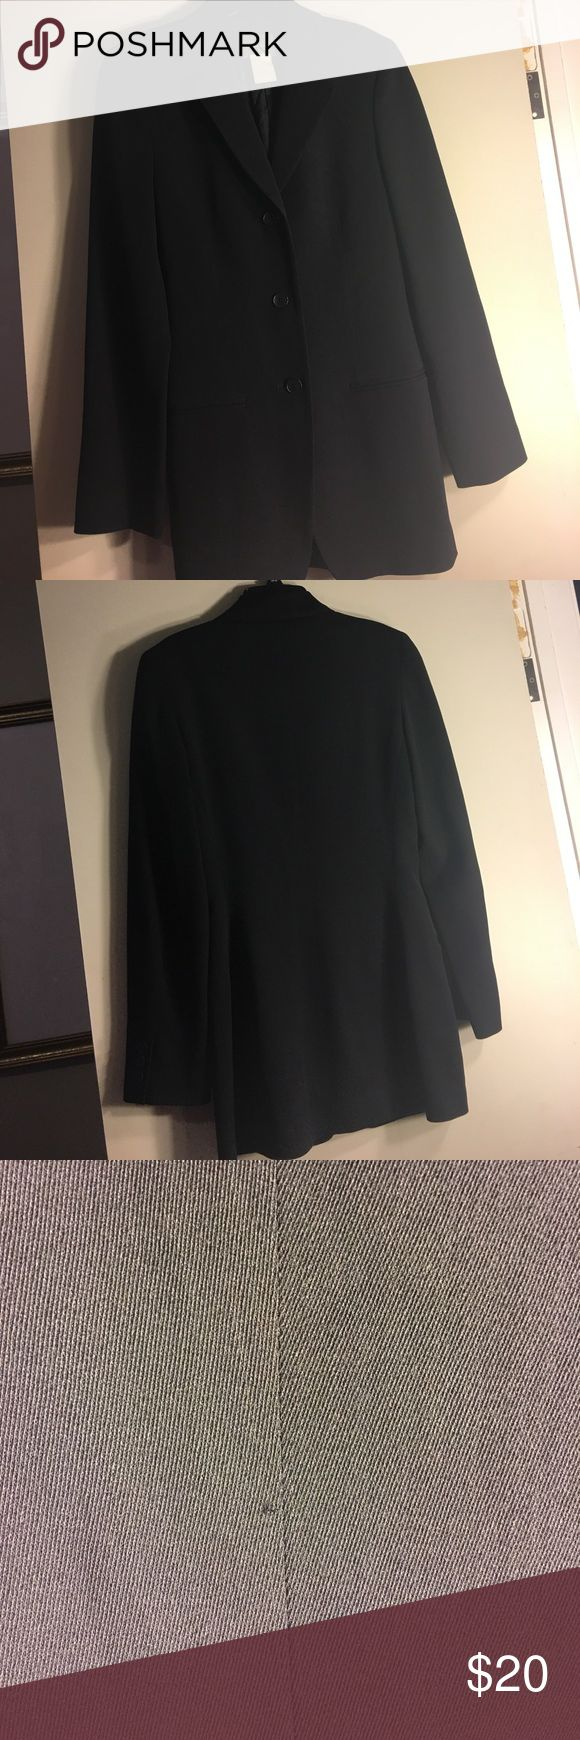 Calvin Klein Wool Blend Black Suit Jacket size 2 Calvin Klein Wool Blend Black Suit Jacket / Blazer size 2.  Made in Italy.  Three Buttons down front.  From a smoke free home.  Note it does have a pulled thread.  Refer to photos to view condition. Calvin Klein Jackets & Coats Blazers